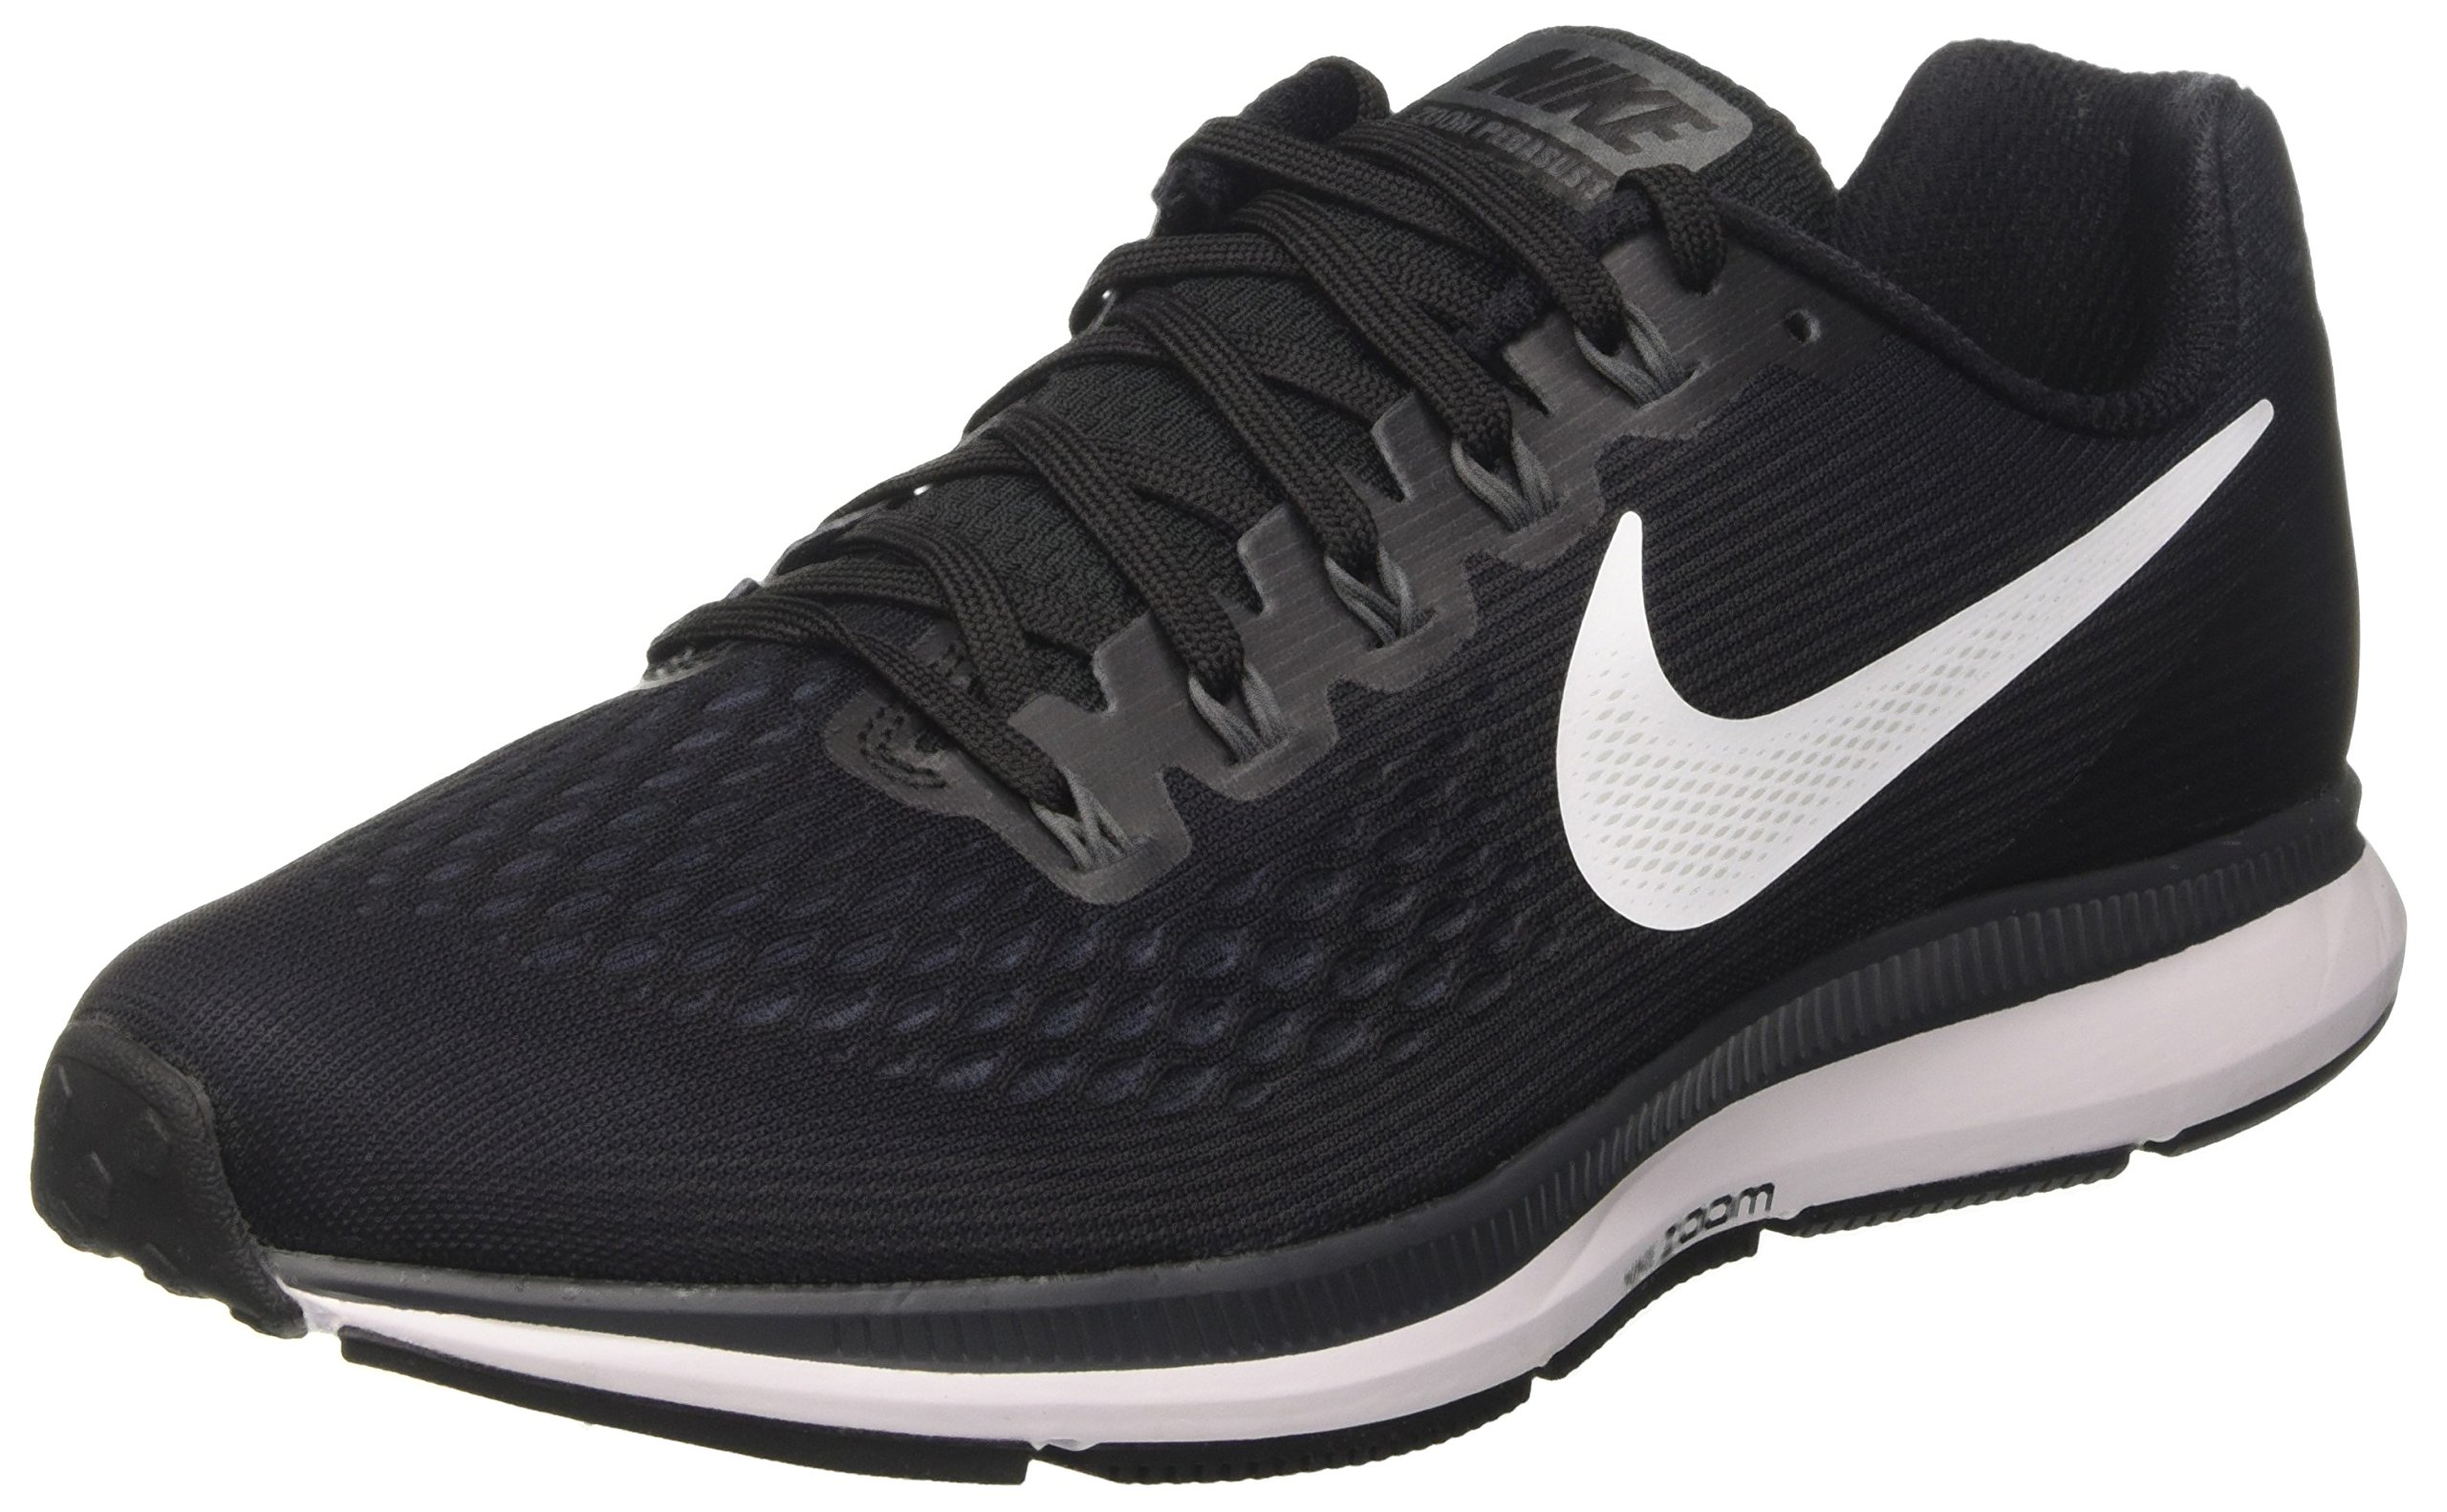 NIKE Men's Air Zoom Pegasus 34 Running Shoe (10 D(M) US, Black/Dark Grey/Anthracite/White) by NIKE